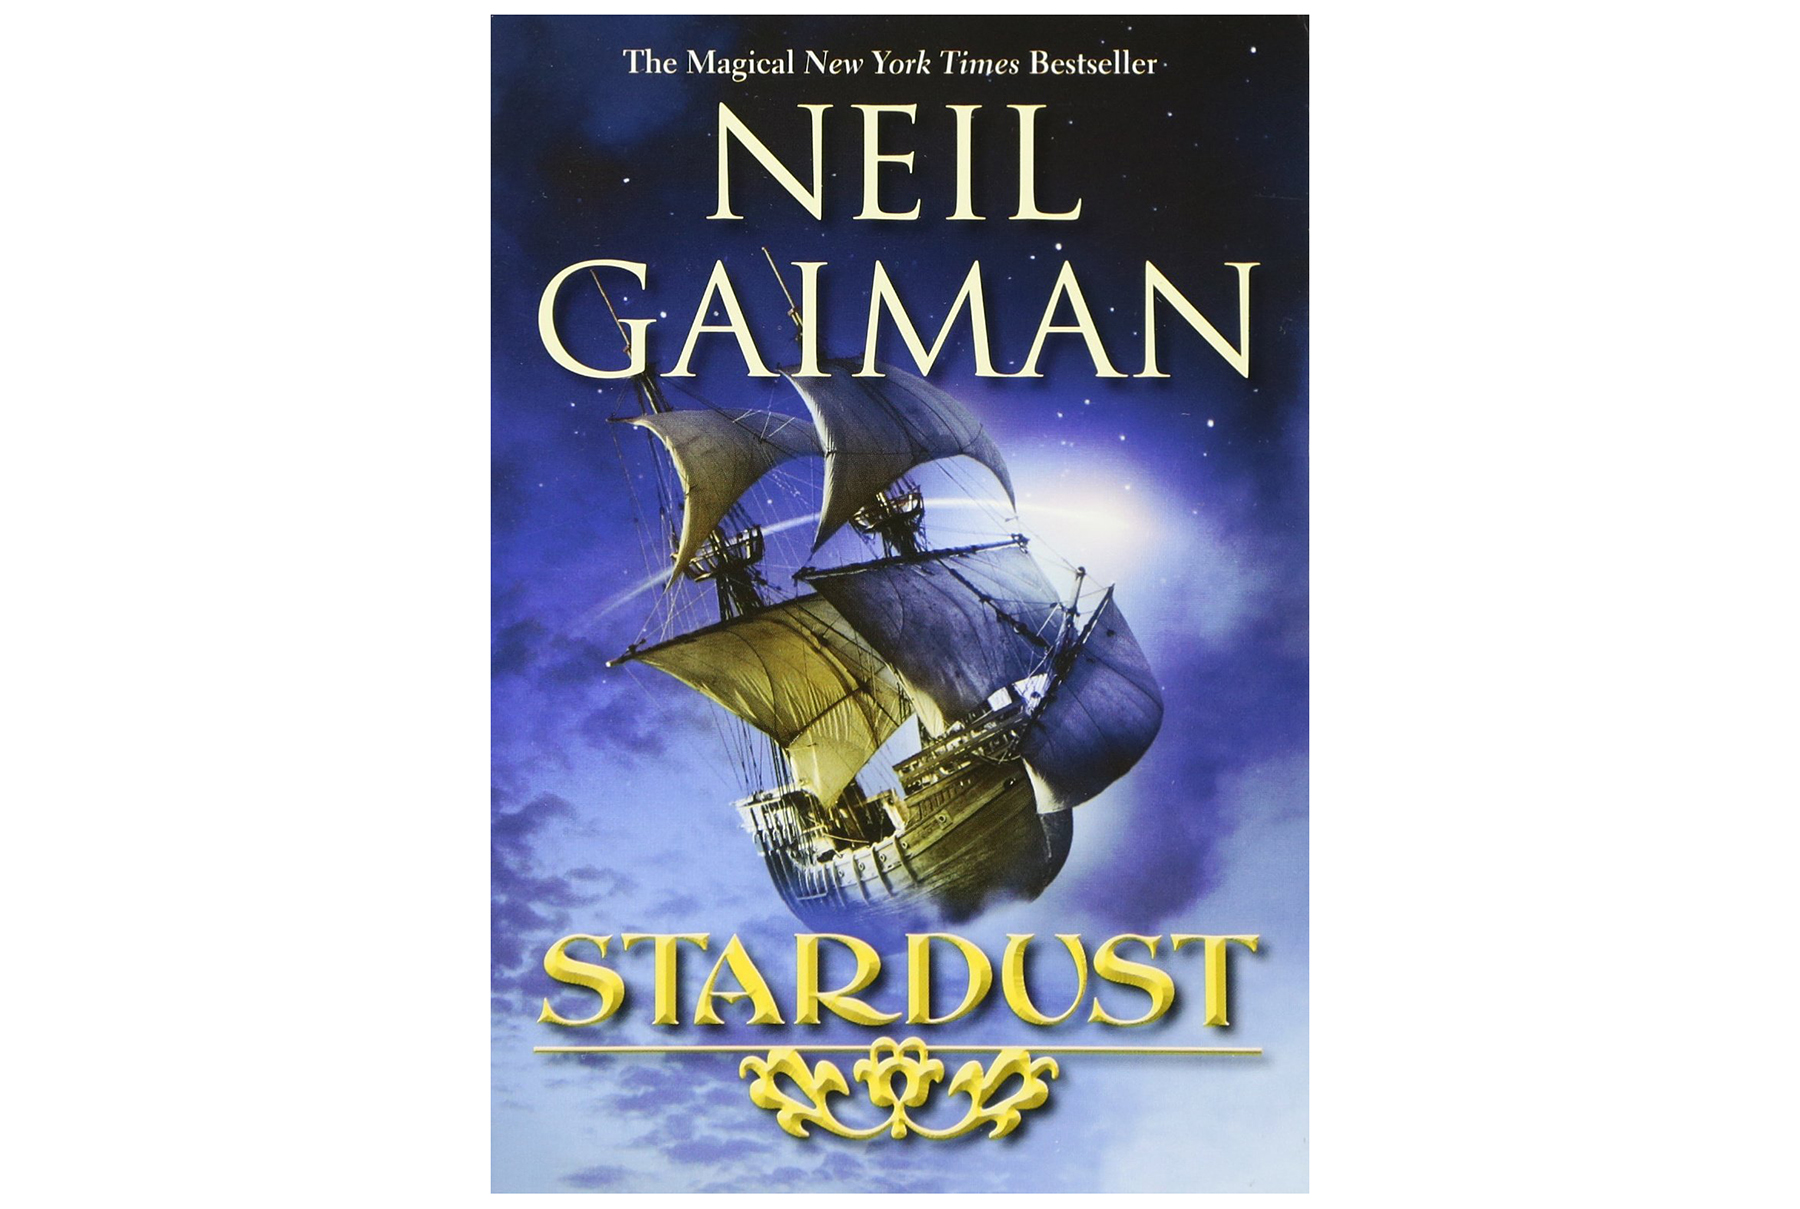 Stardust, by Neil Gaiman